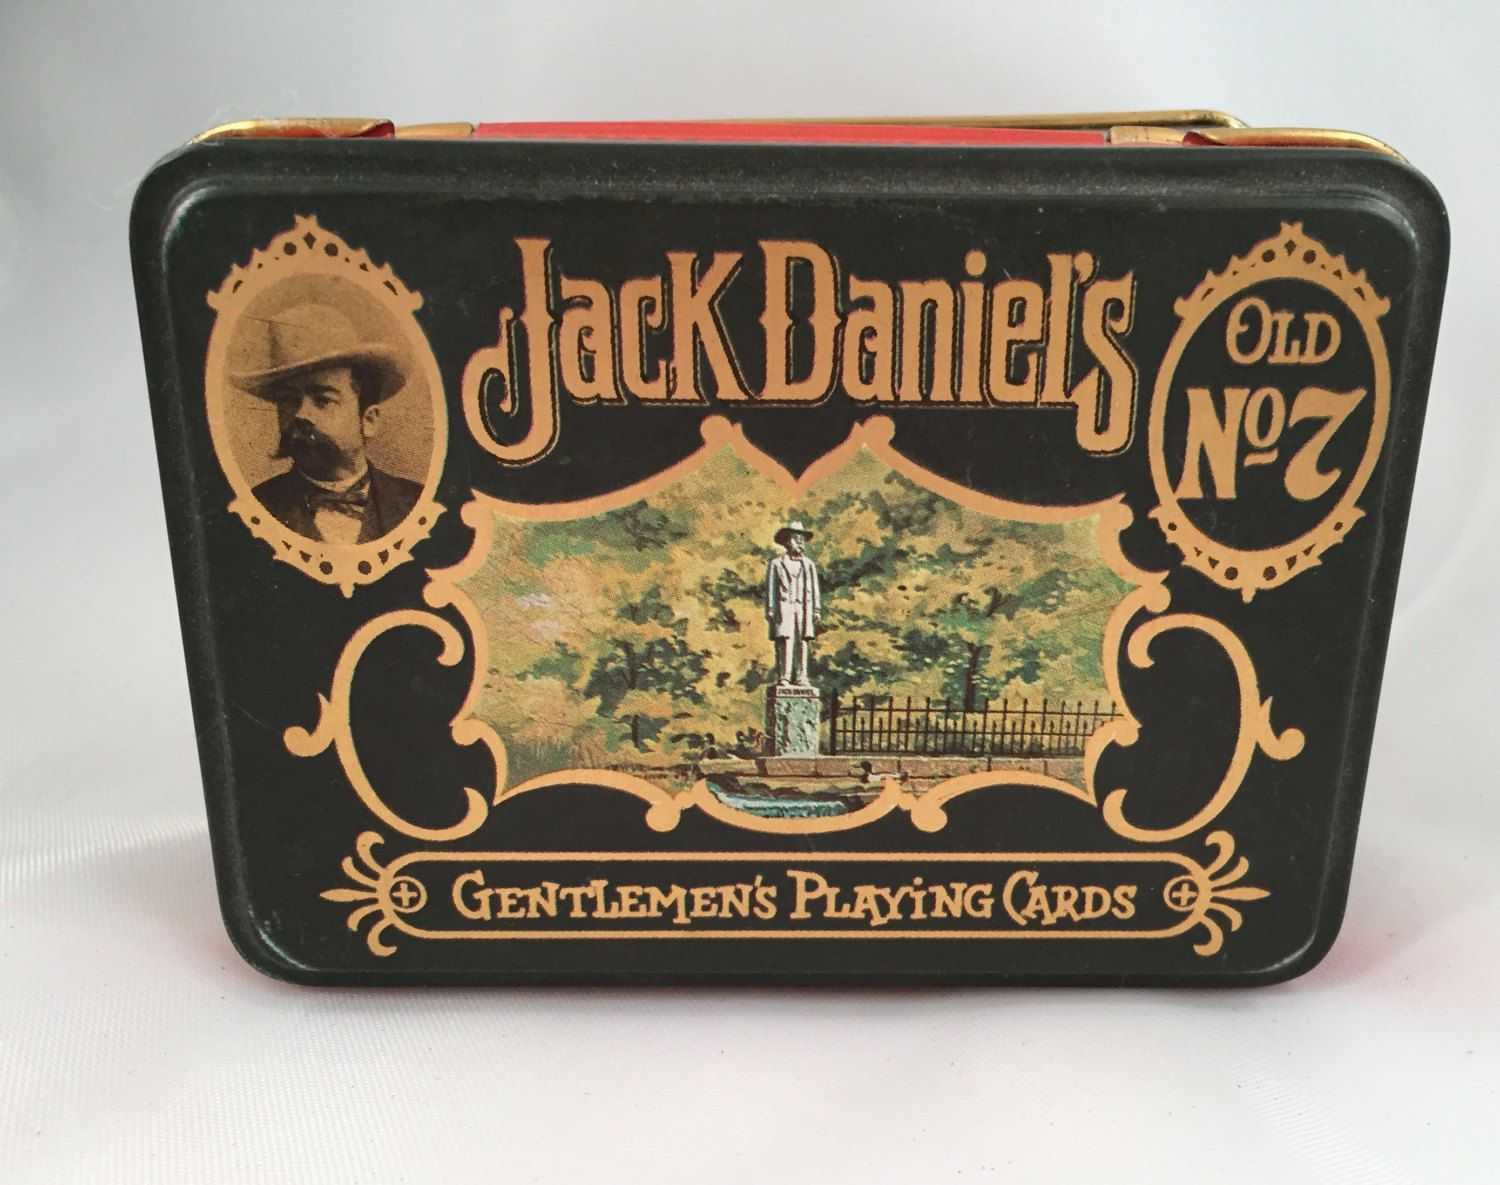 Jack daniels old no 7 gentlemens playing cards by